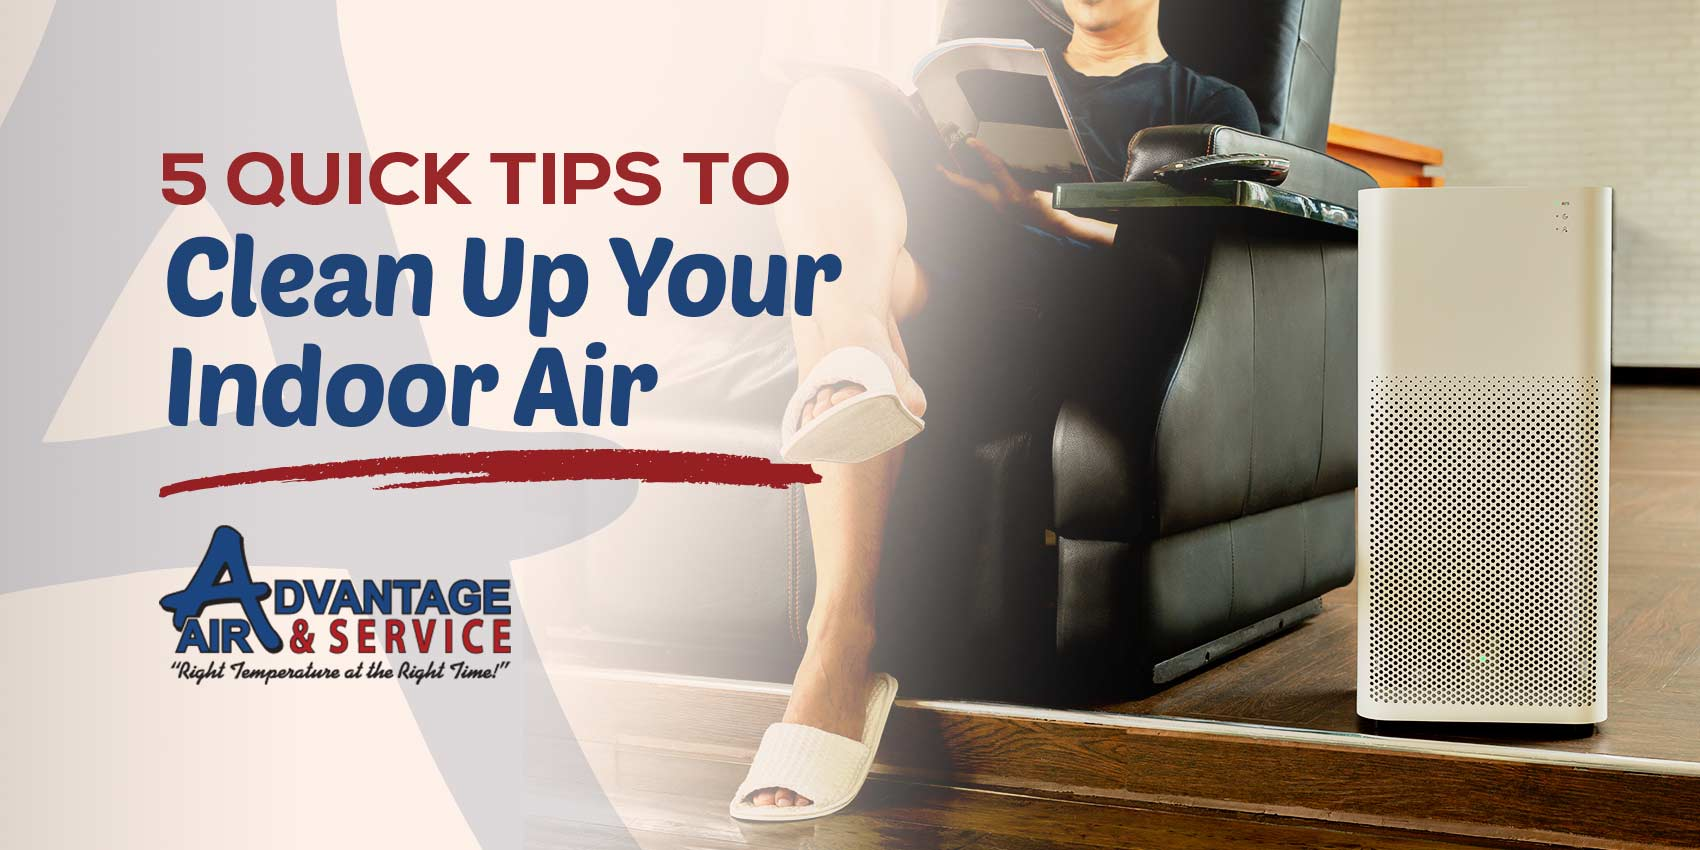 5 Quick & Easy Tips to Clean Up Your Indoor Air